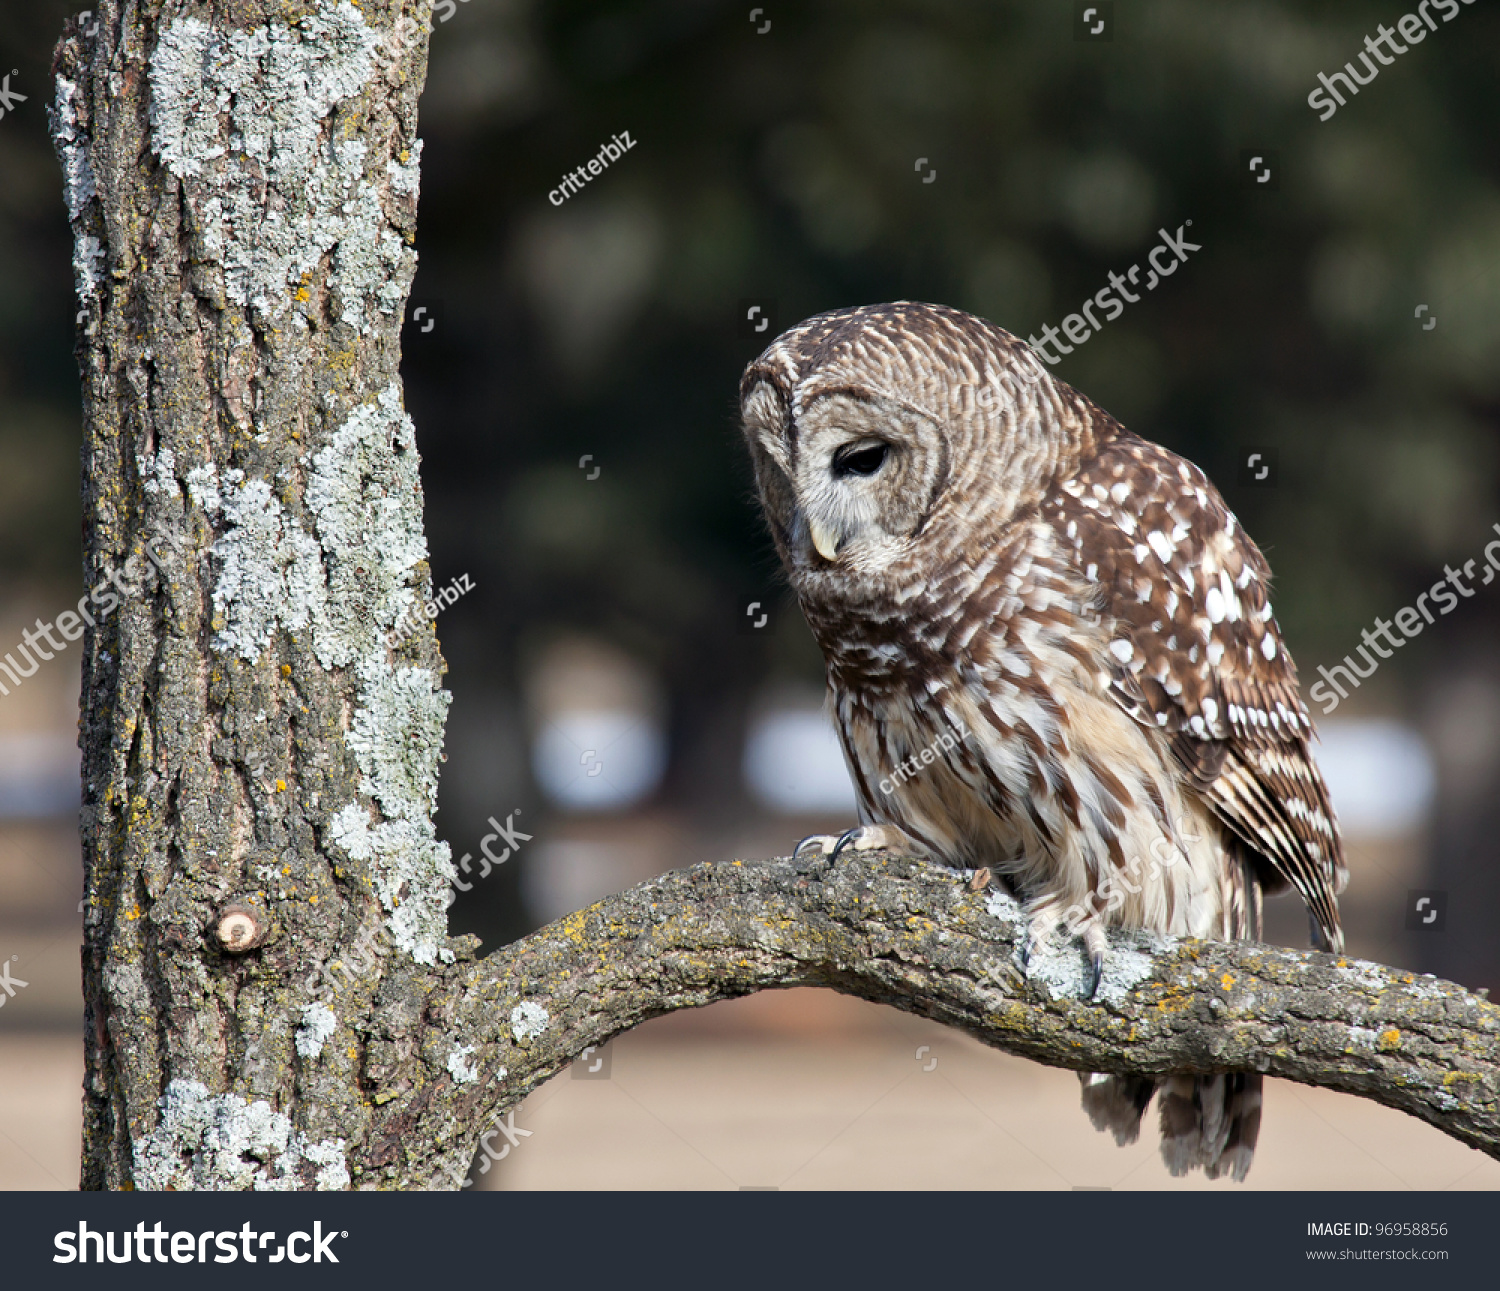 Close Up Of A Barred Owl Perching On An Oak Tree Branch Stock Photo 96958856 : Shutterstock